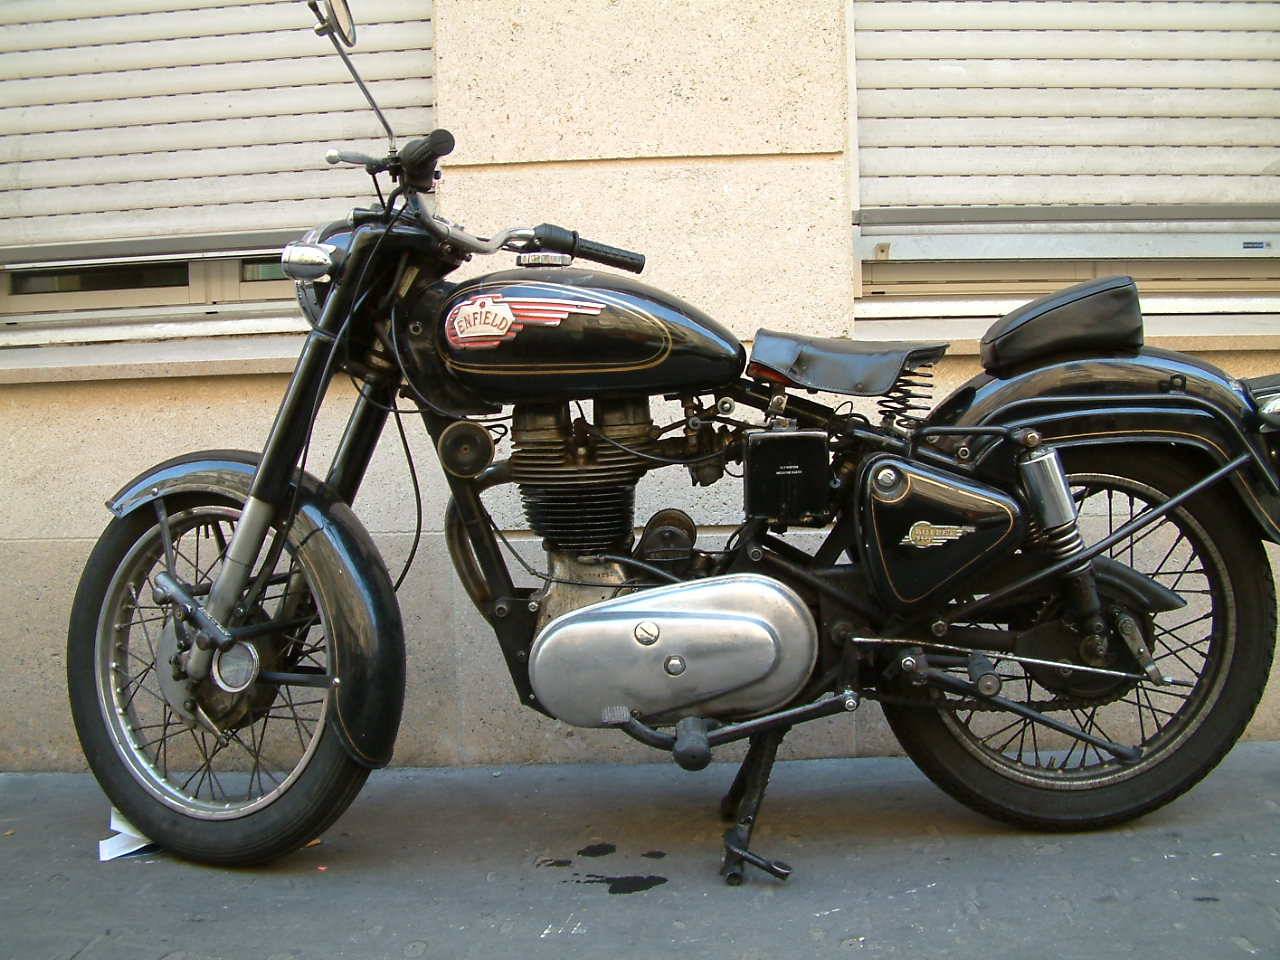 Royal Enfield Bullet 500 Army 1997 images #158643